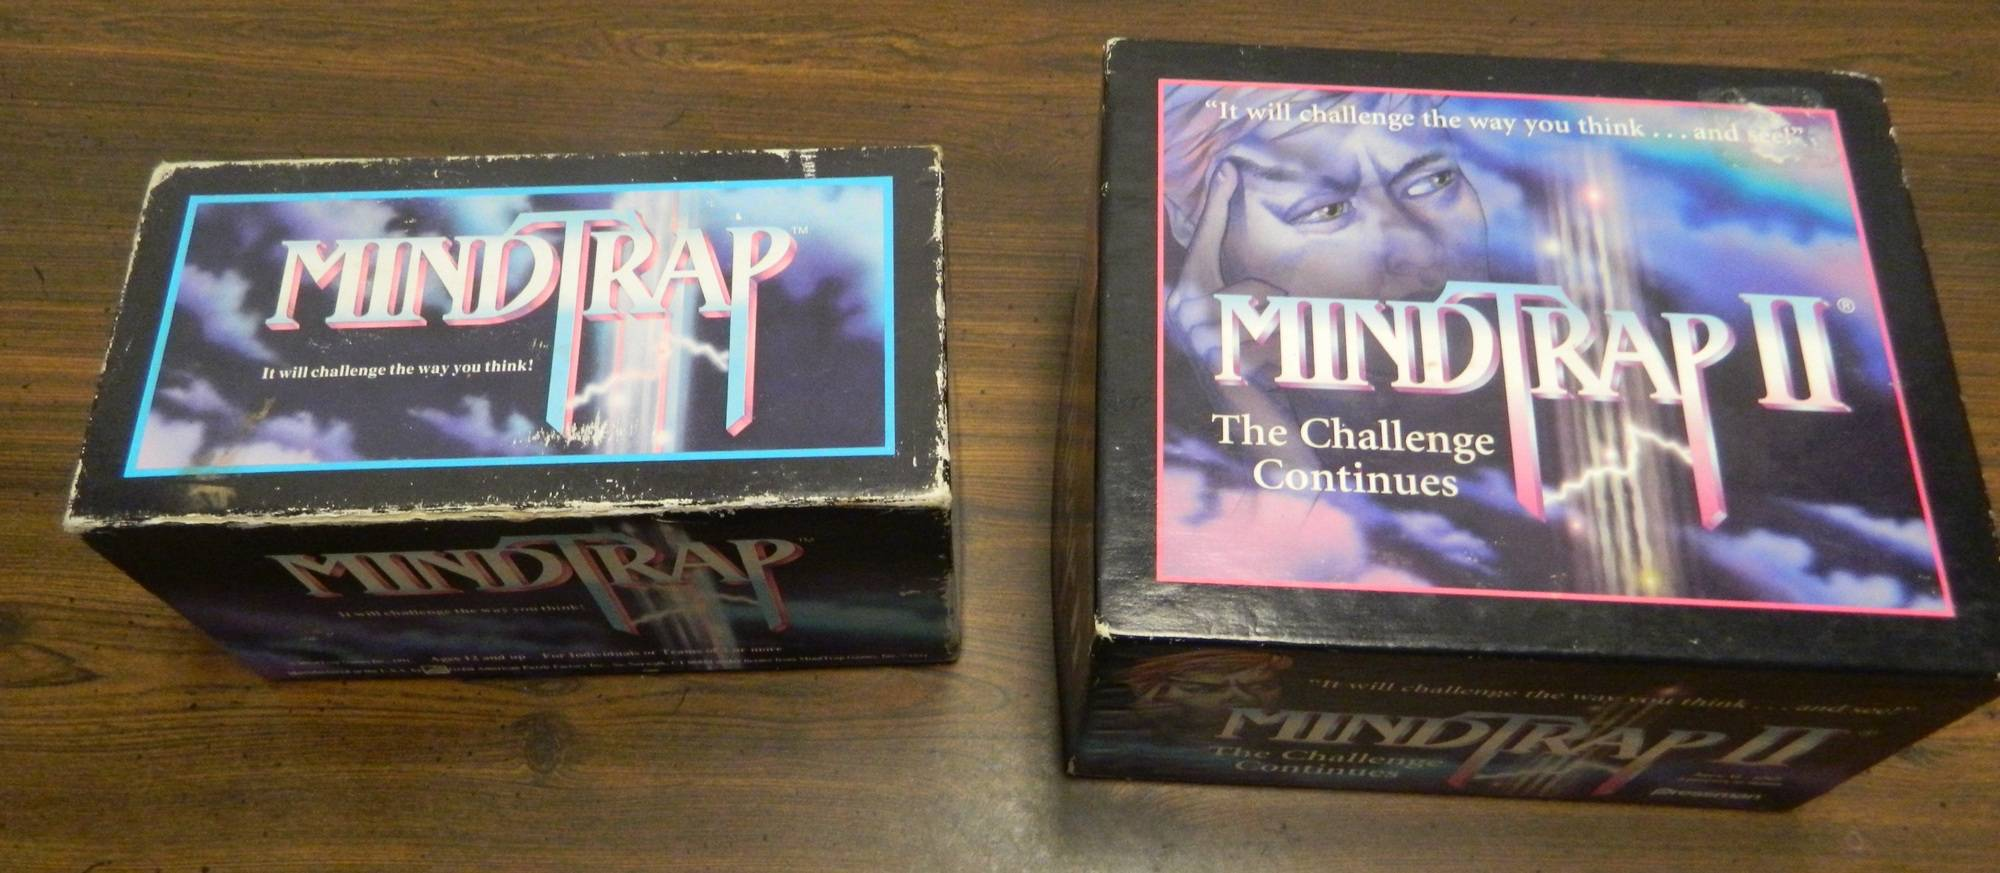 Boxes for MindTrap